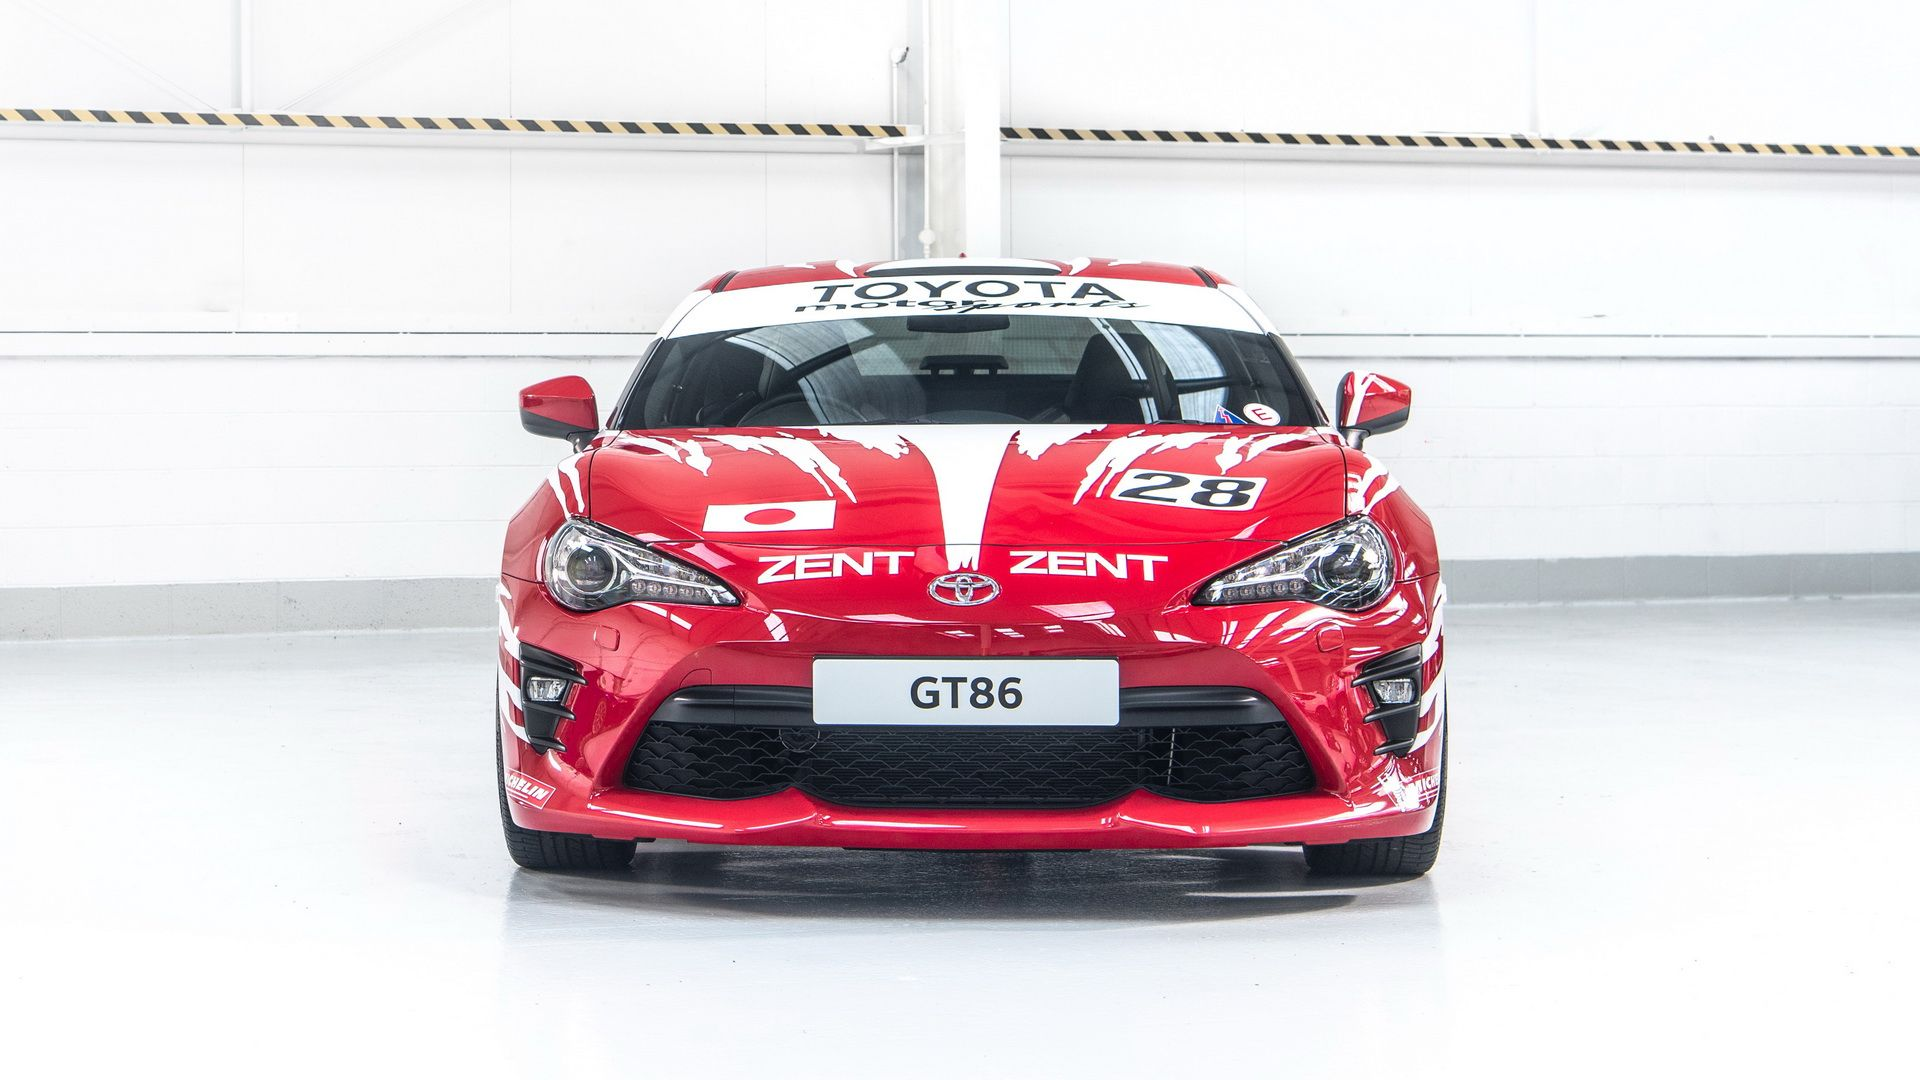 toyota-gt86-heritage-livery-24-hours-of-le-mans-7